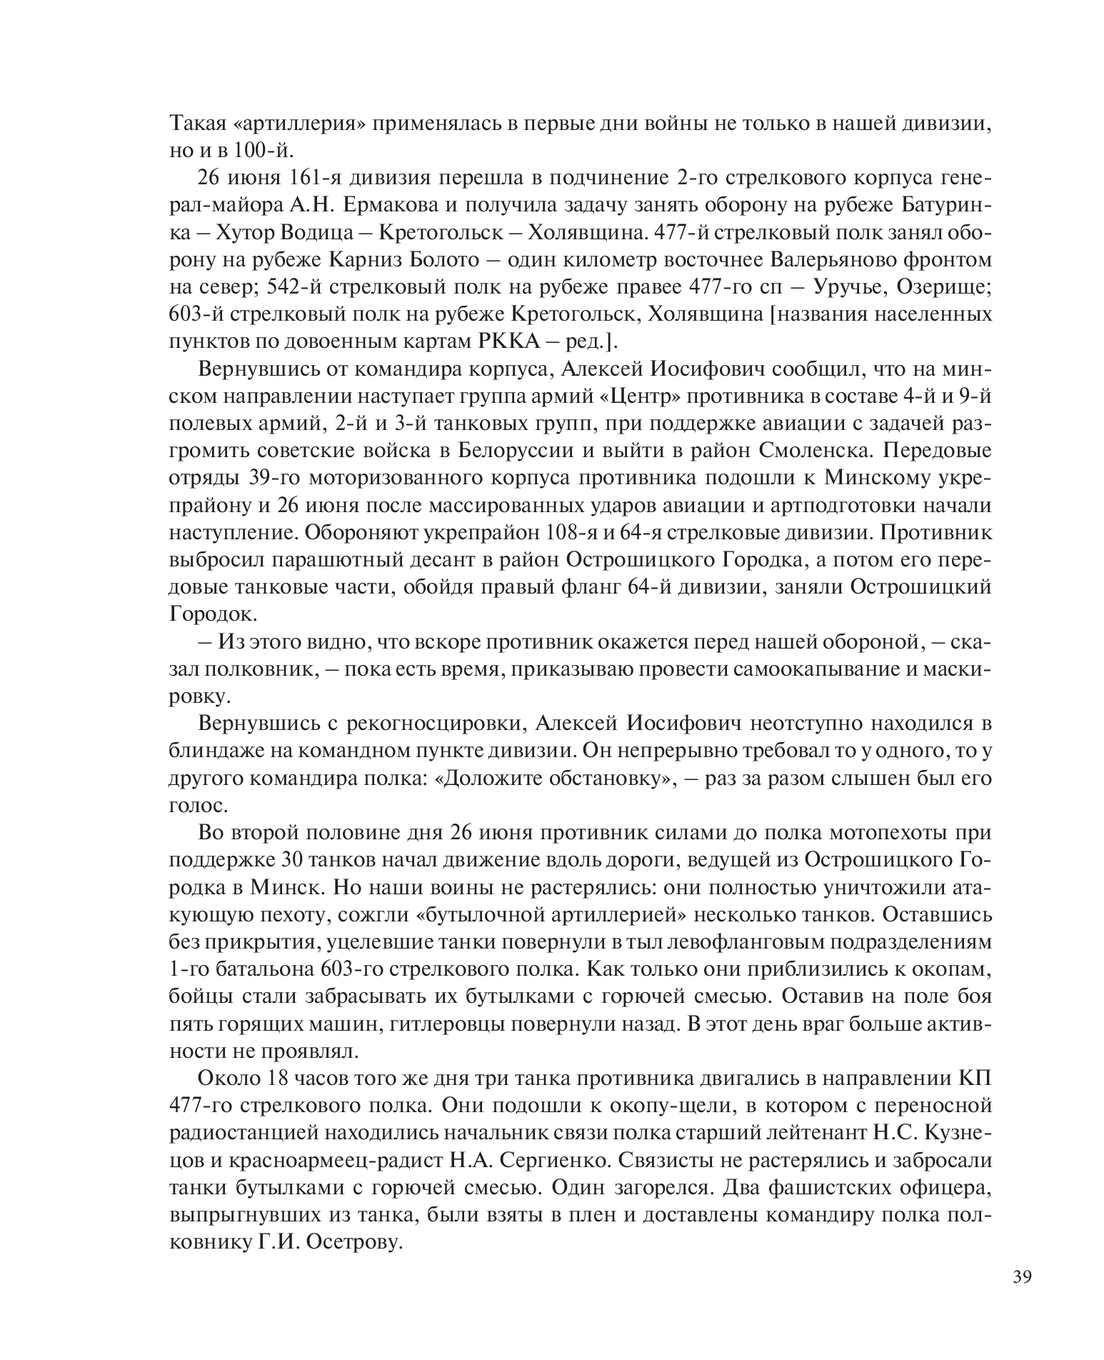 Page 40